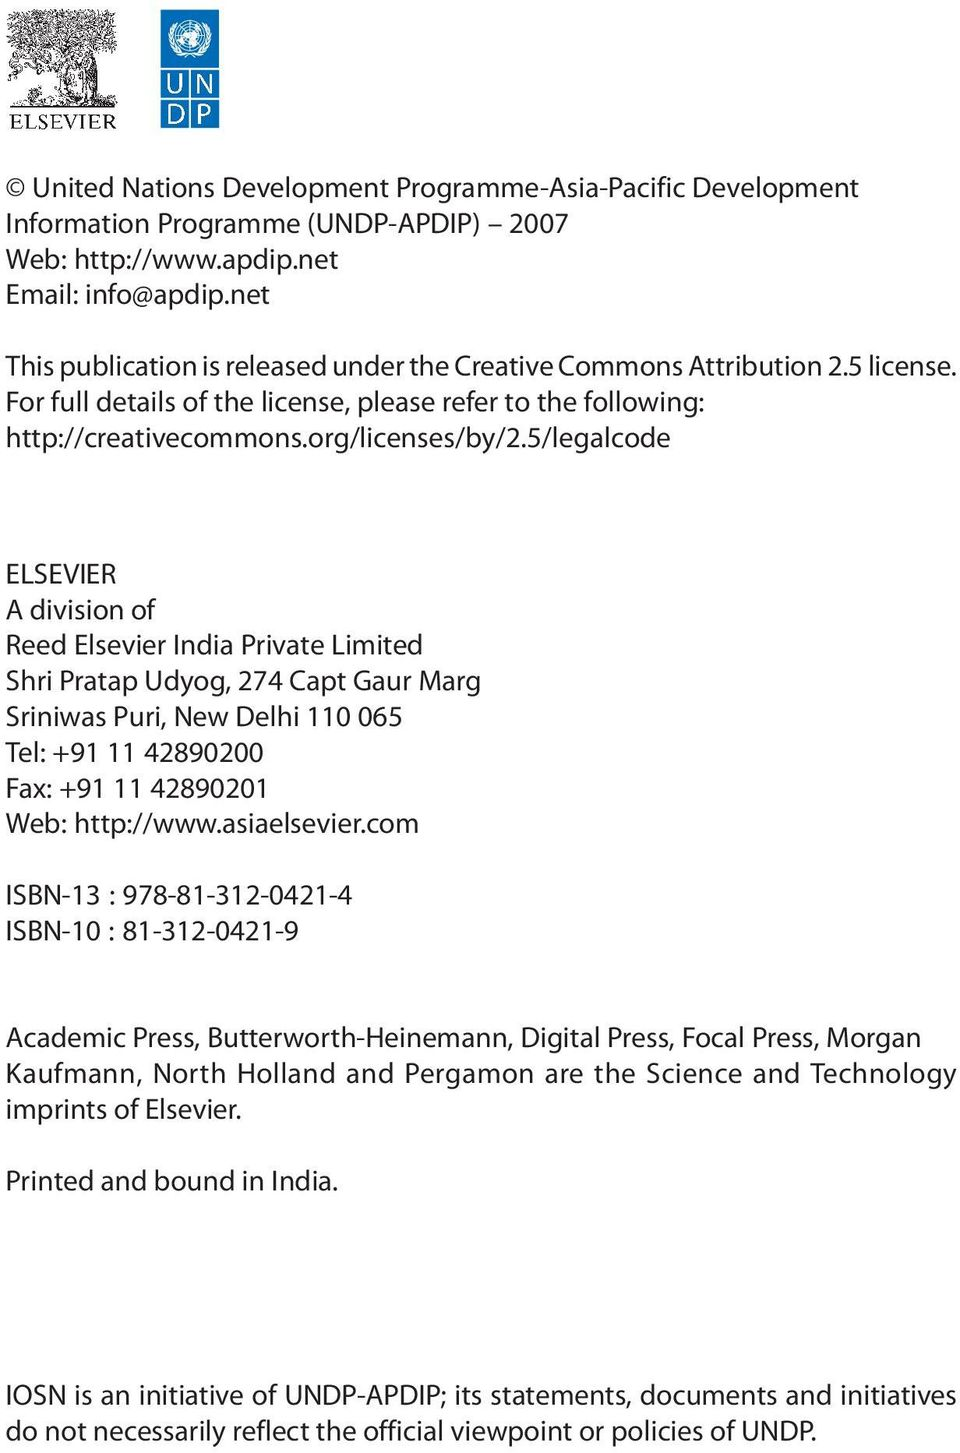 5/legalcode ELSEVIER A division of Reed Elsevier India Private Limited Shri Pratap Udyog, 274 Capt Gaur Marg Sriniwas Puri, New Delhi 110 065 Tel: +91 11 42890200 Fax: +91 11 42890201 Web: http://www.